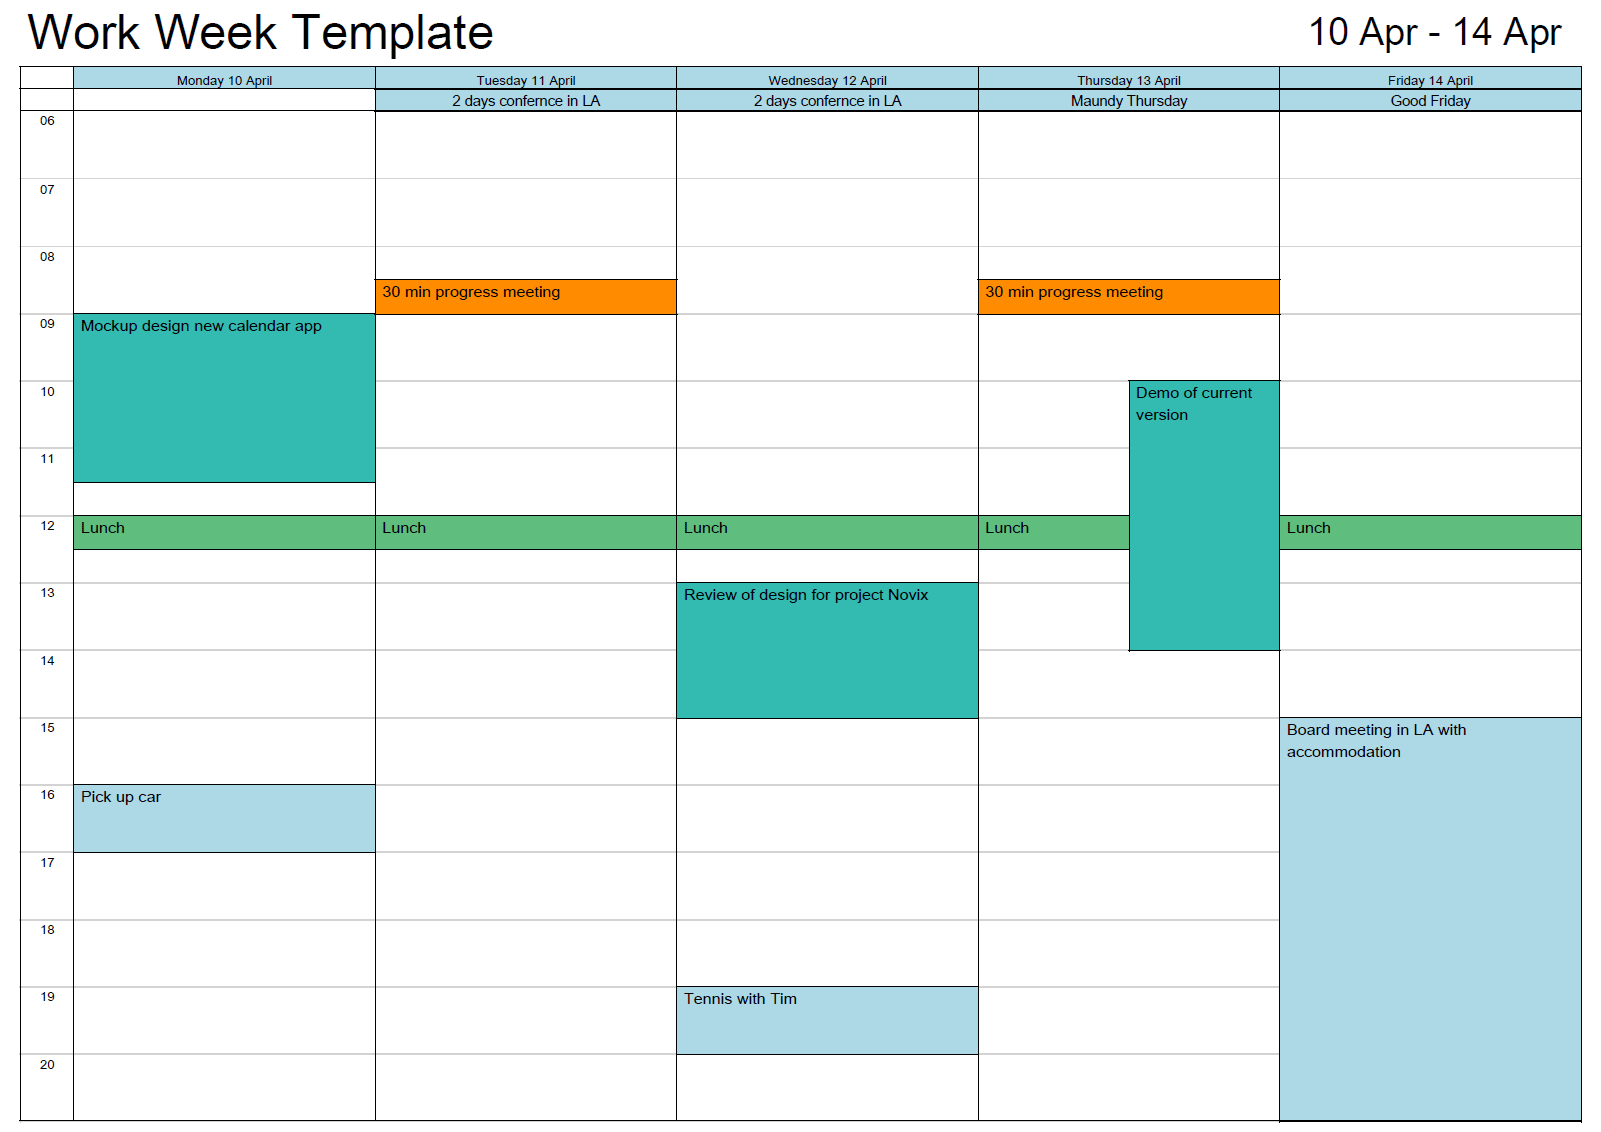 Schedule Template Outlook Printable Calendar In Print Ork Eek Free throughout Outlook Calendar Template 5 Week